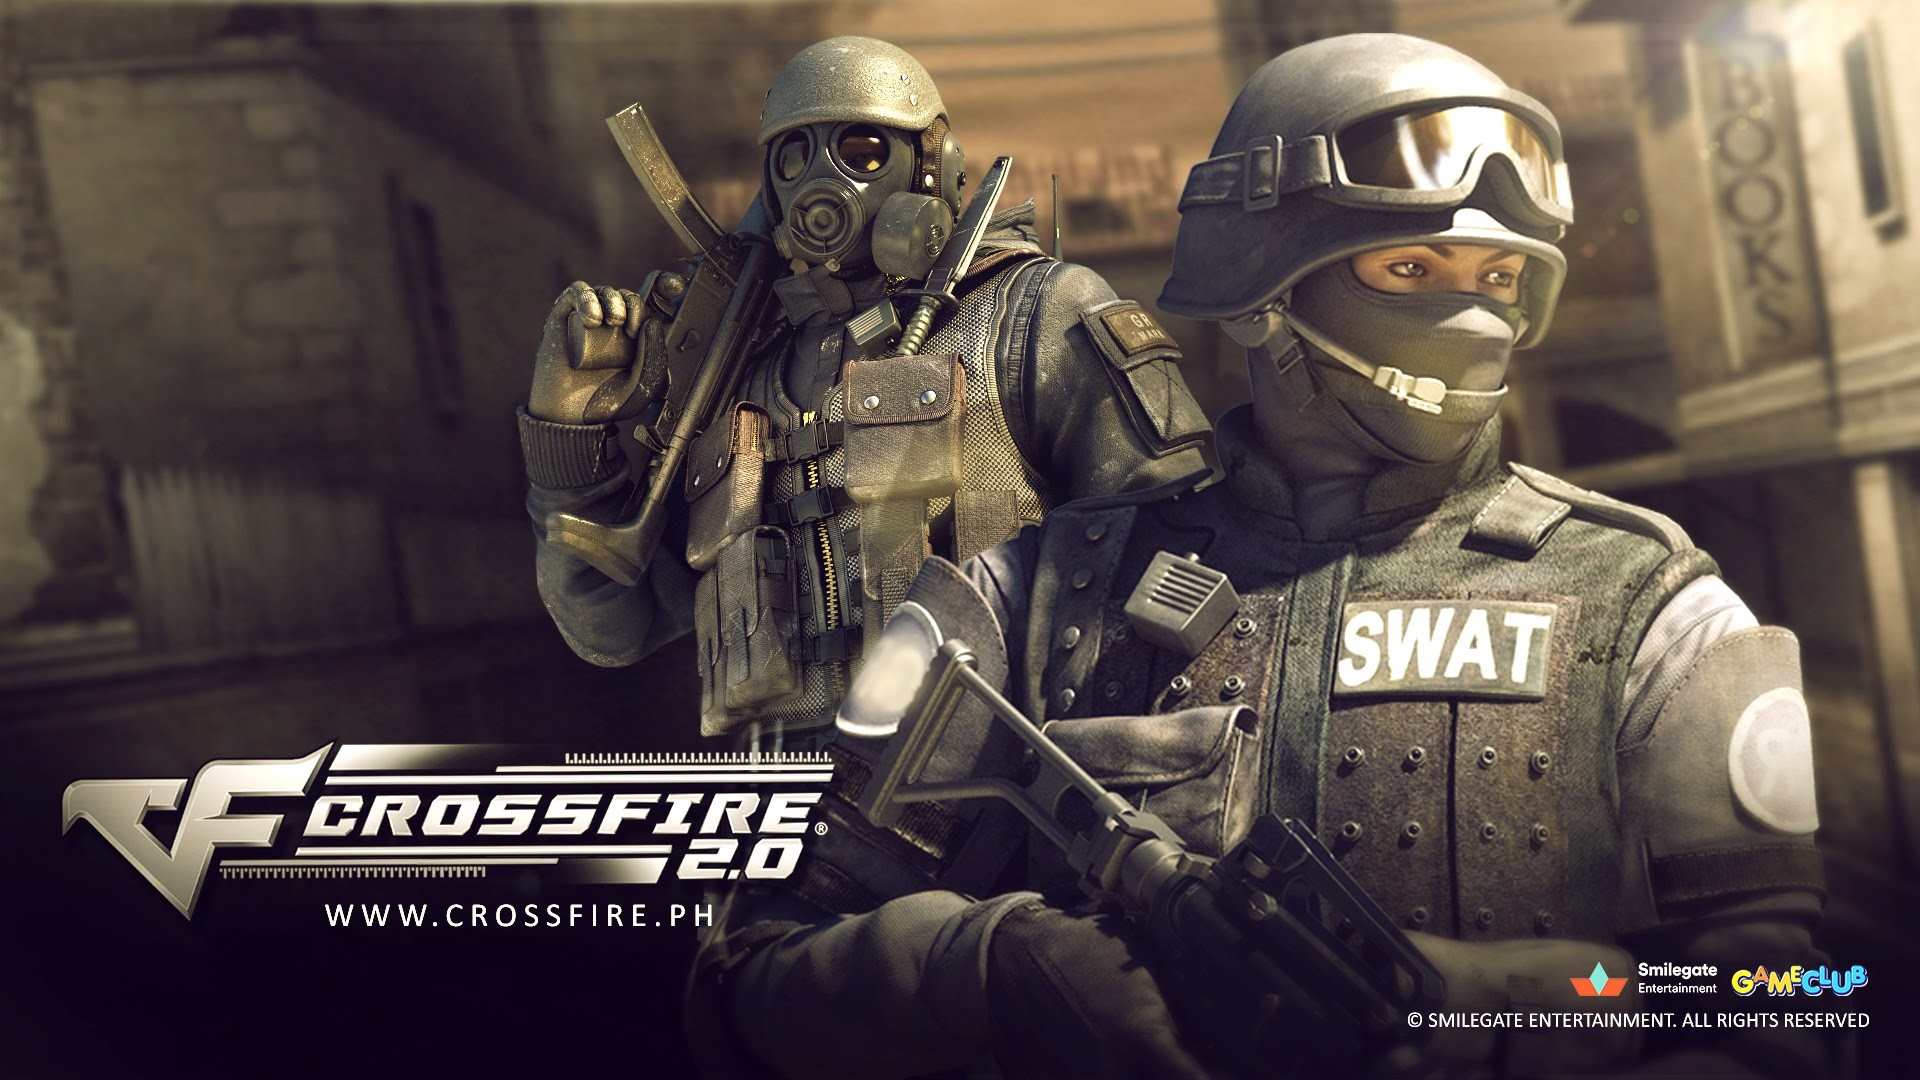 Crossfire 2 0 - Free downloads and reviews - CNET Download.com